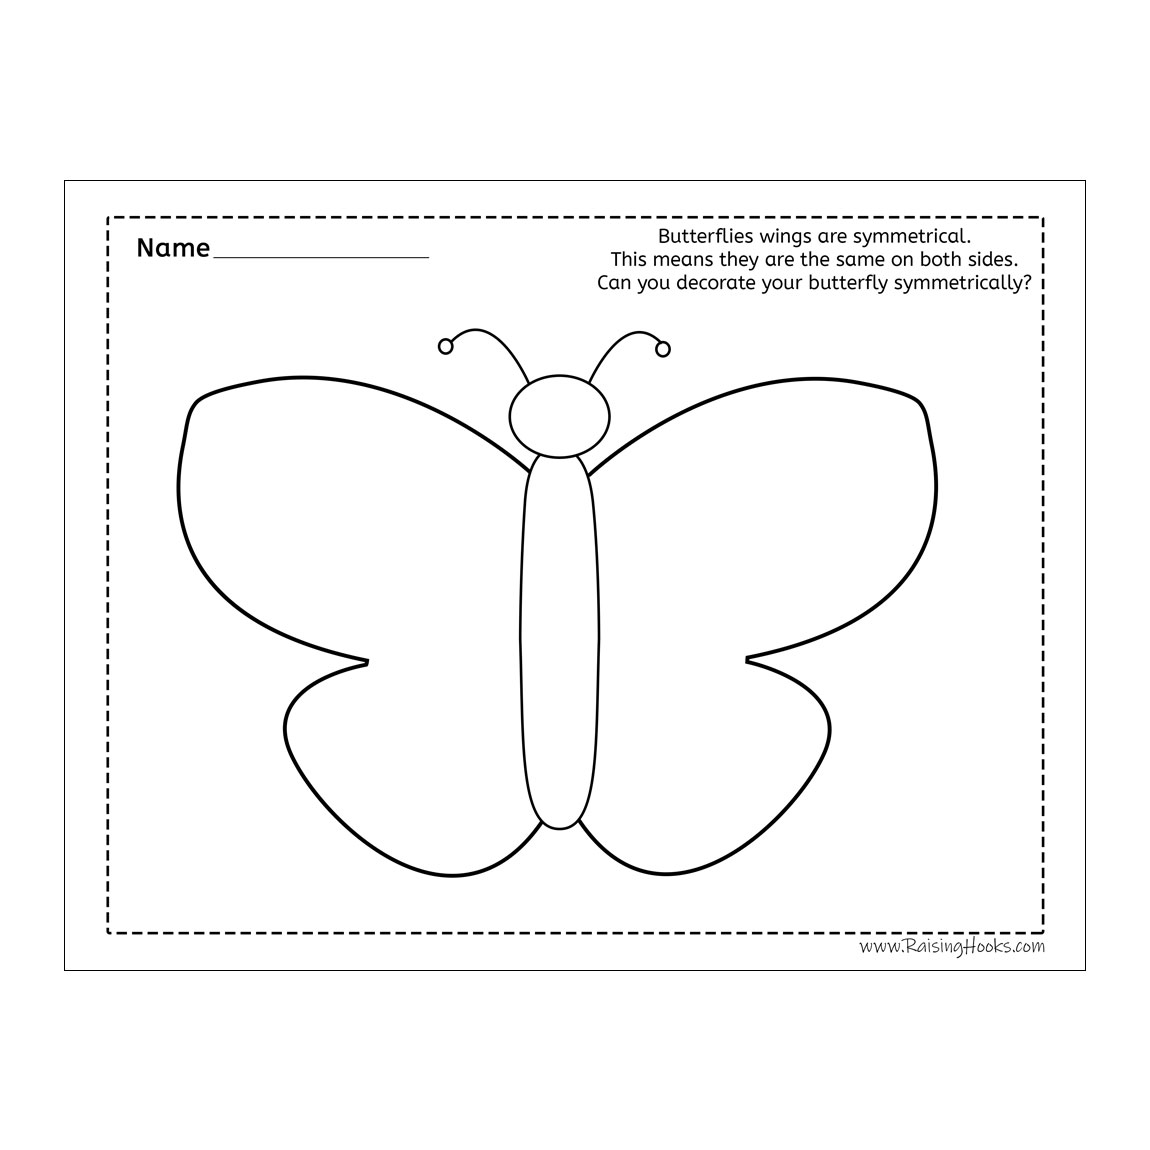 Decorate Your Butterfly Symmetrically